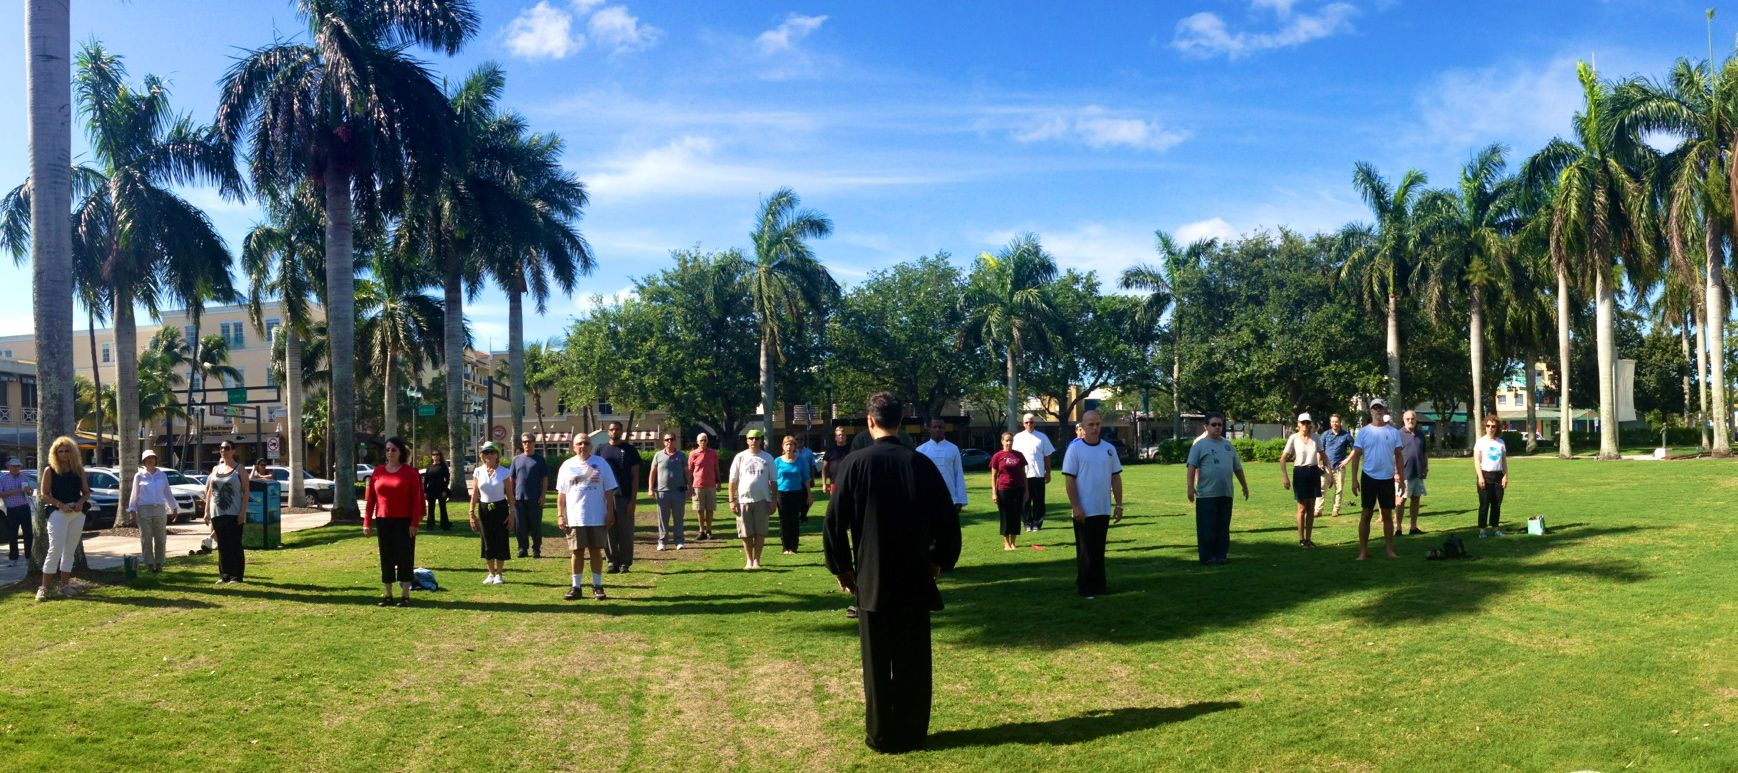 Laoshi nick leading a qigong class in the park on world